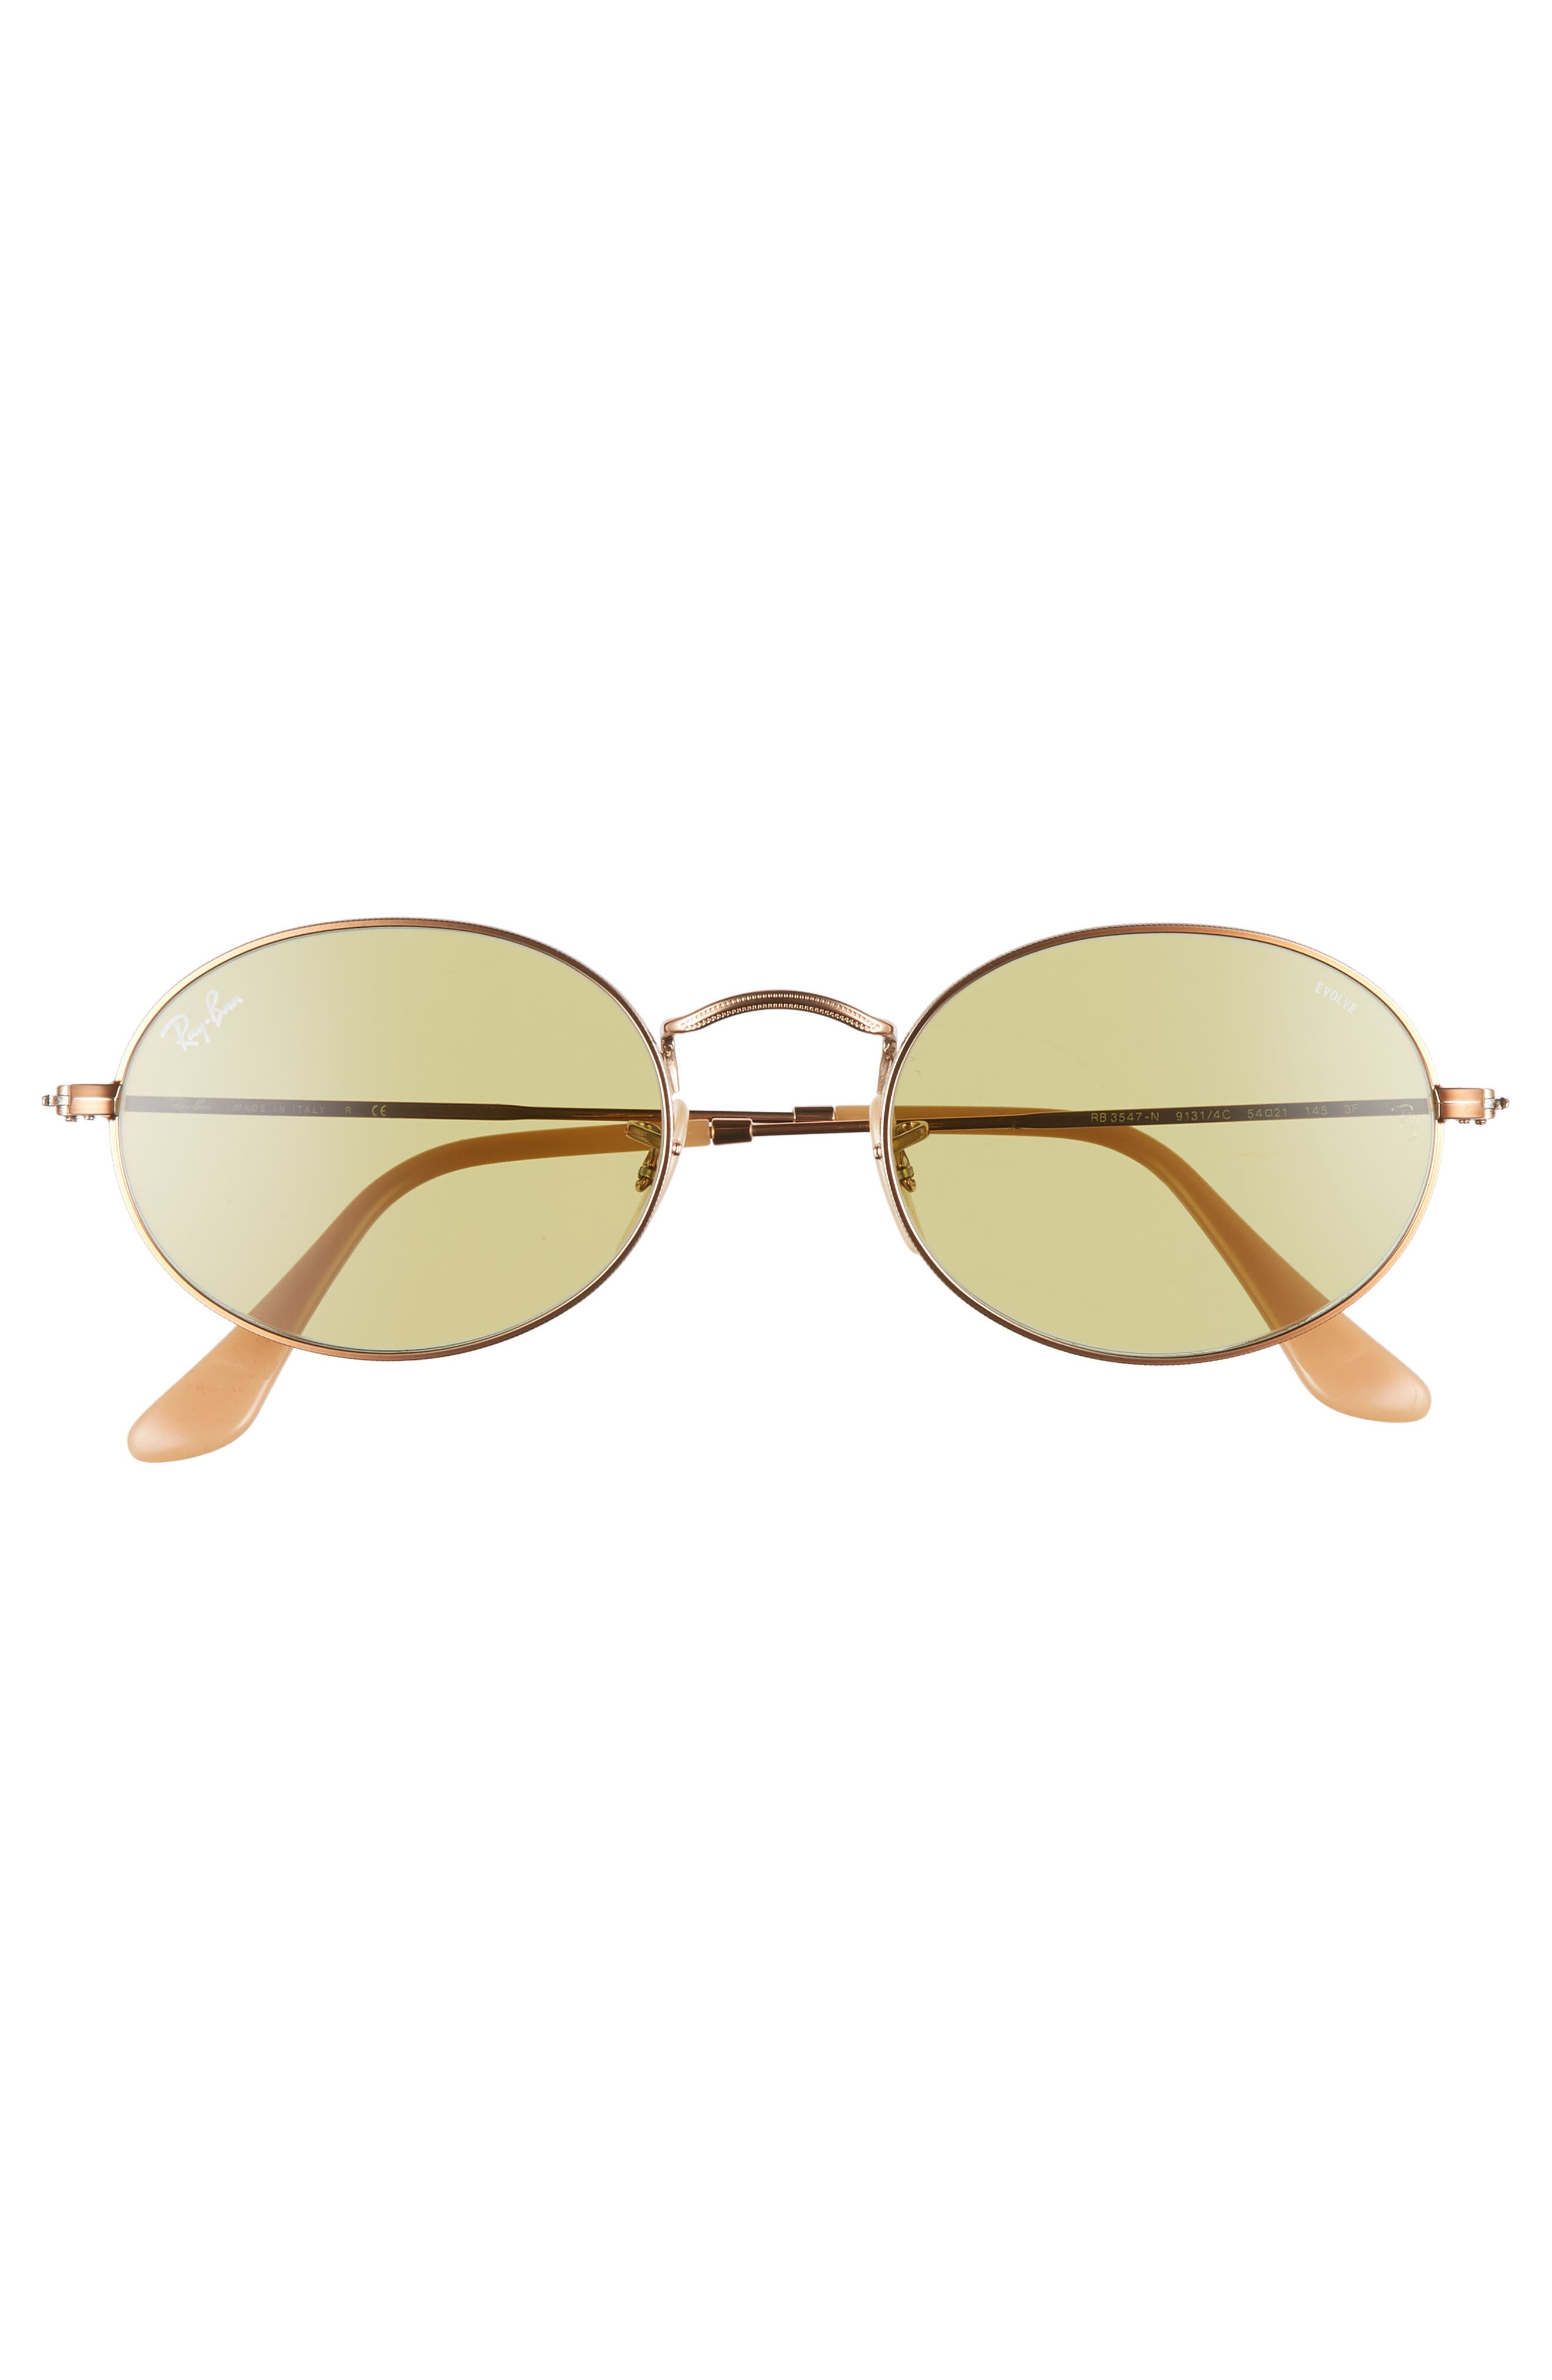 RAY-BAN, Evolve 54mm Polarized Oval Sunglasses, Alternate thumbnail 3, color, GOLD/ GREEN SOLID